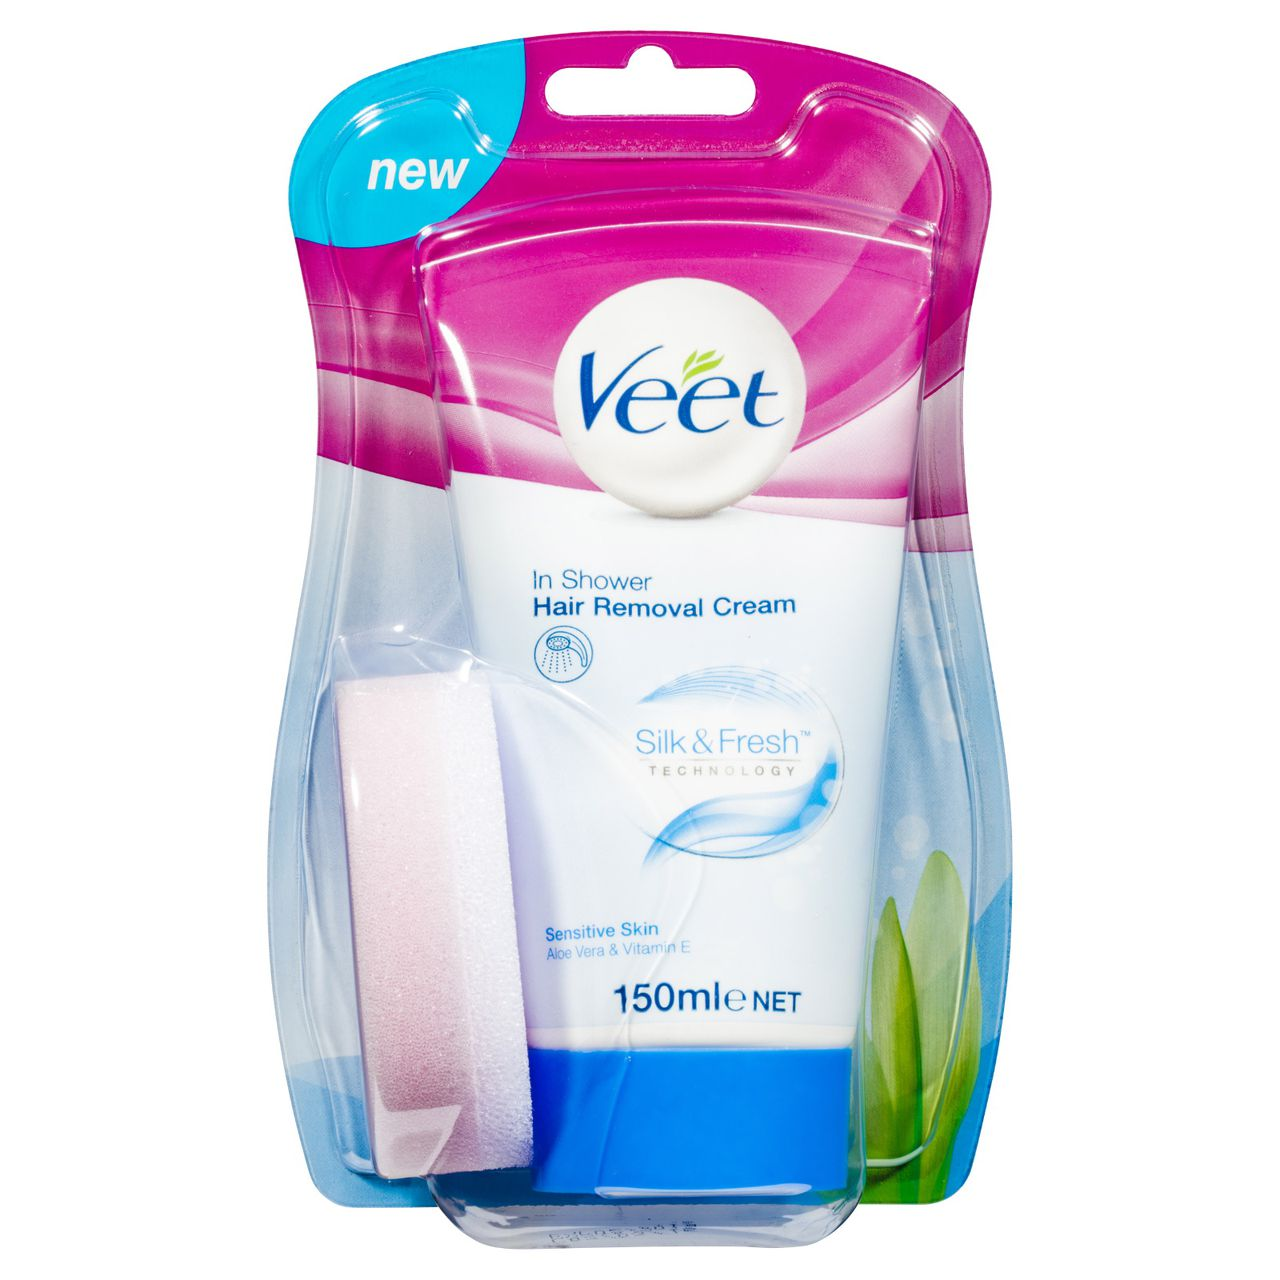 Veet In Shower Hair Removal Cream Sensitive Veet Australia